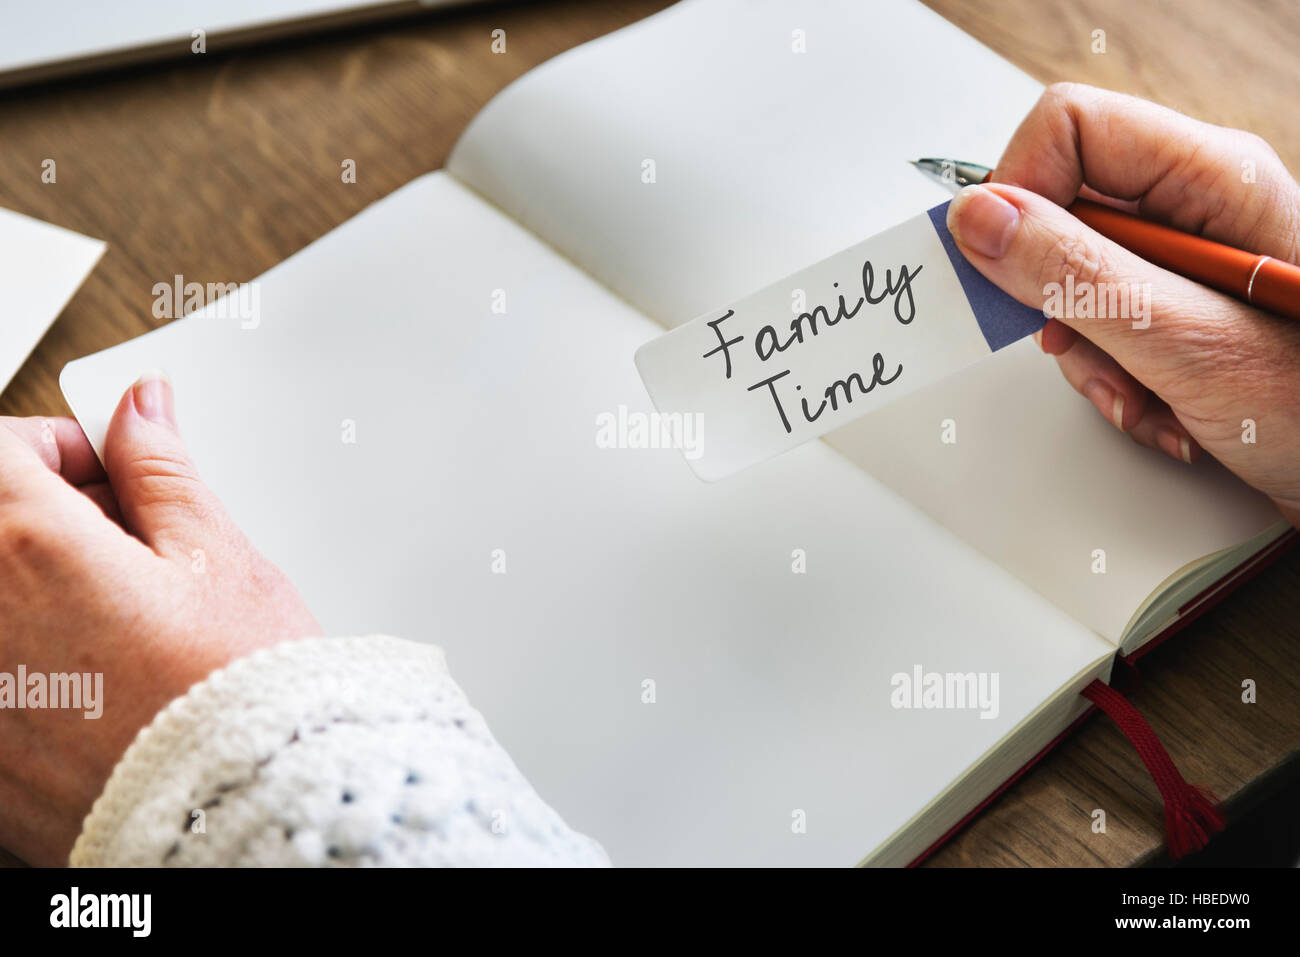 Family Parents Related Sibling Offspring Group Concept - Stock Image